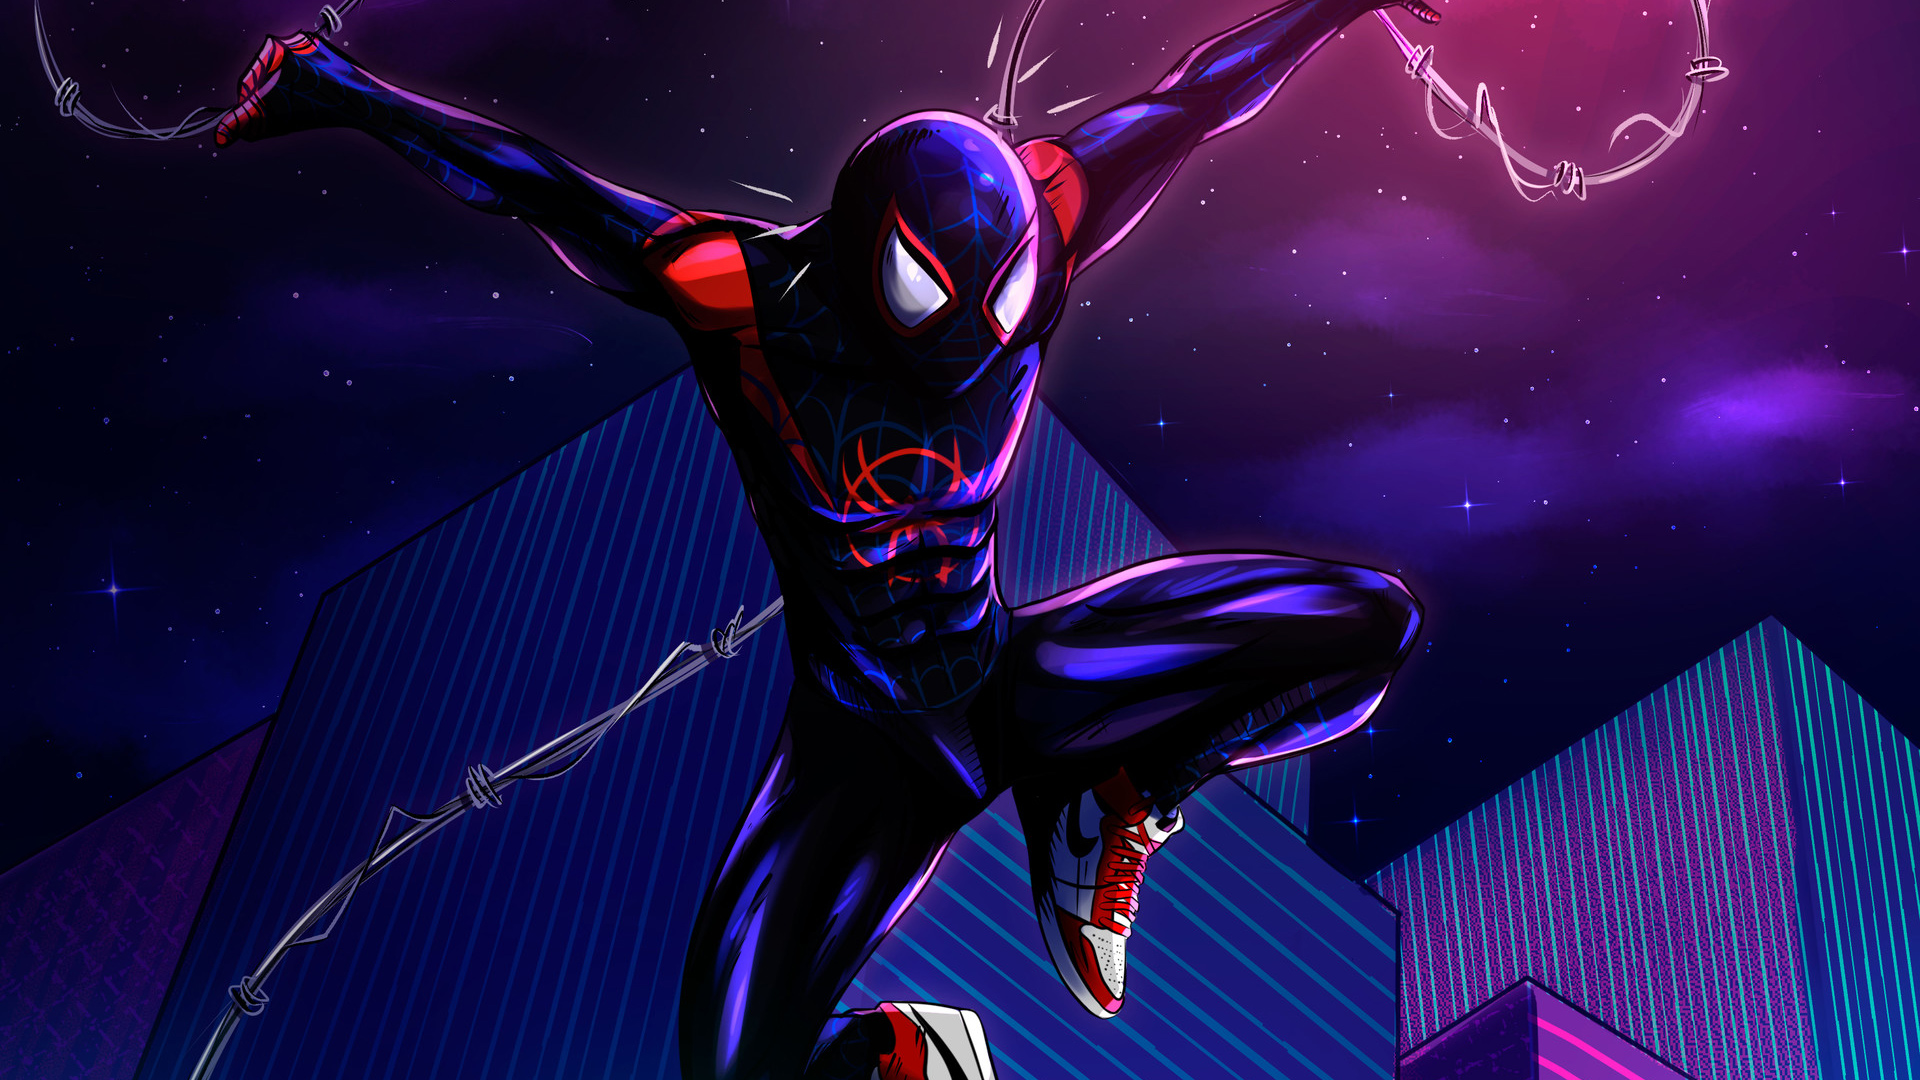 New Spider Verse Arts Hd Superheroes 4k Wallpapers Images